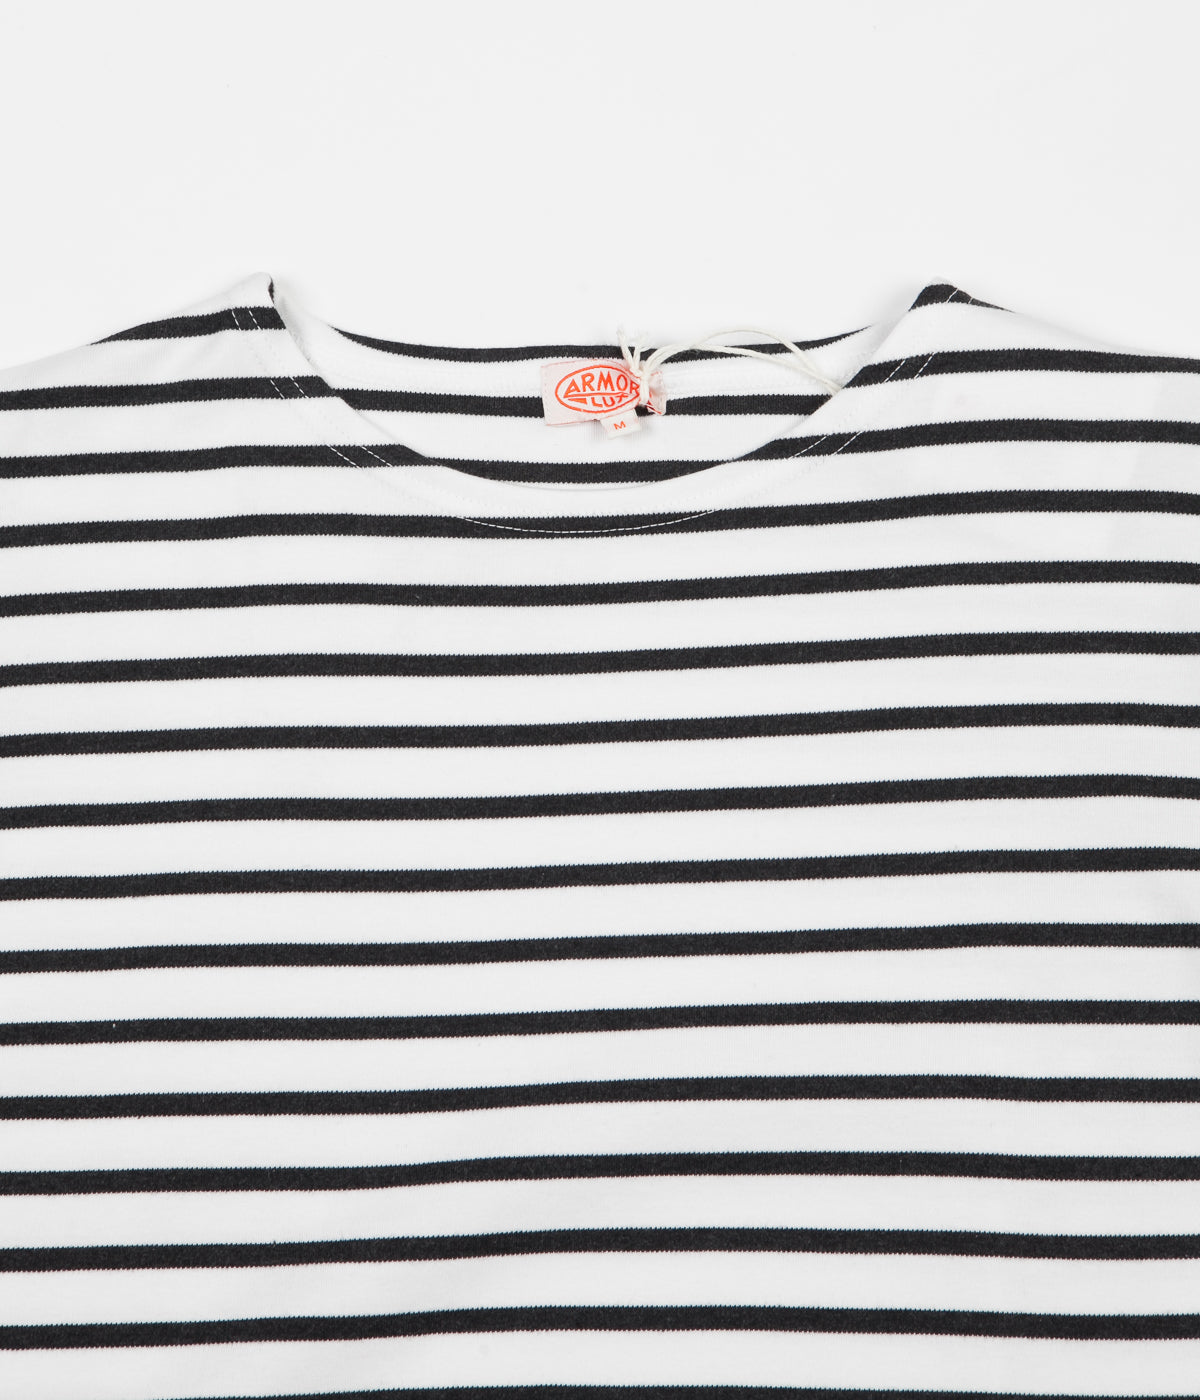 Armor Lux Breton Long Sleeve T-Shirt - Milk / Ebony